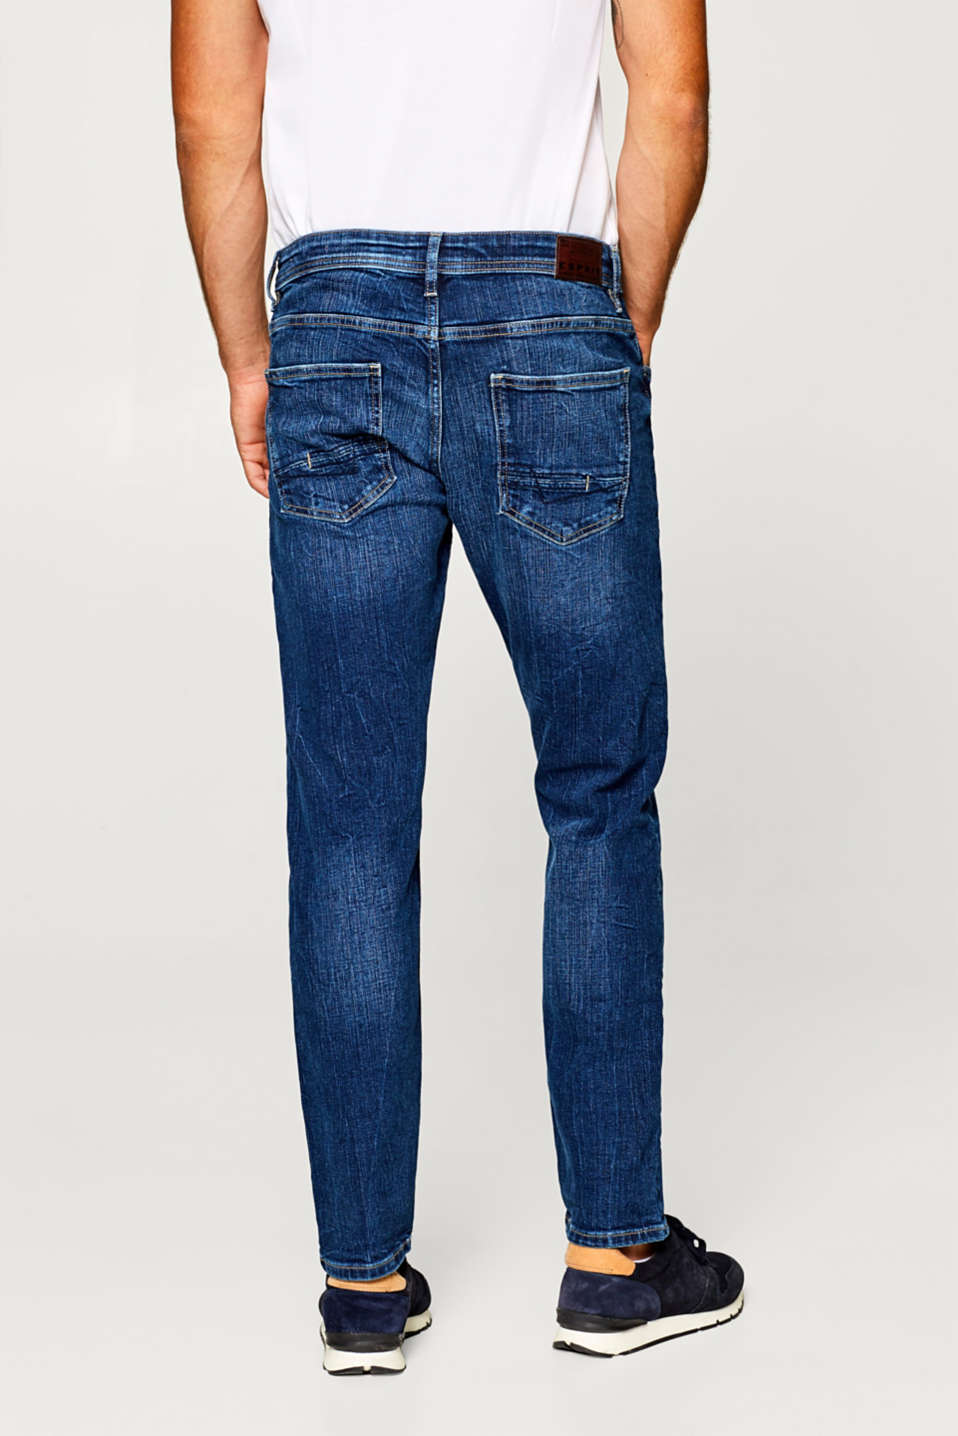 Cropped stretch jeans with a garment wash